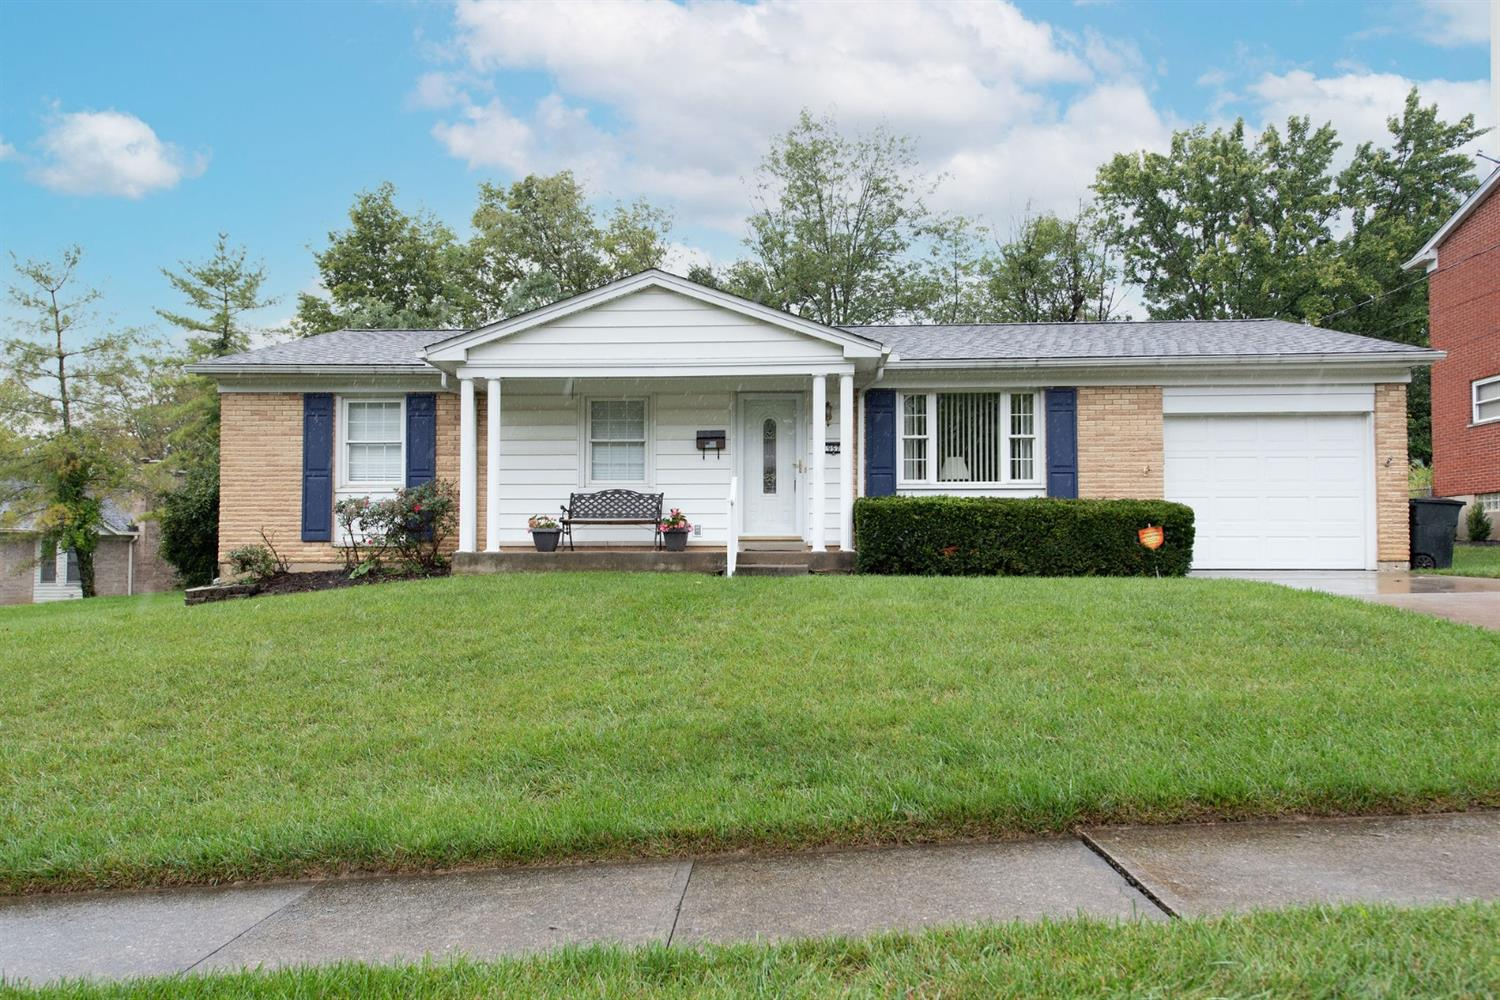 957 Hilliard Drive, Delhi Twp, Ohio 45238, 3 Bedrooms Bedrooms, 6 Rooms Rooms,1 BathroomBathrooms,Single Family Residence,For Sale,Hilliard,1716411